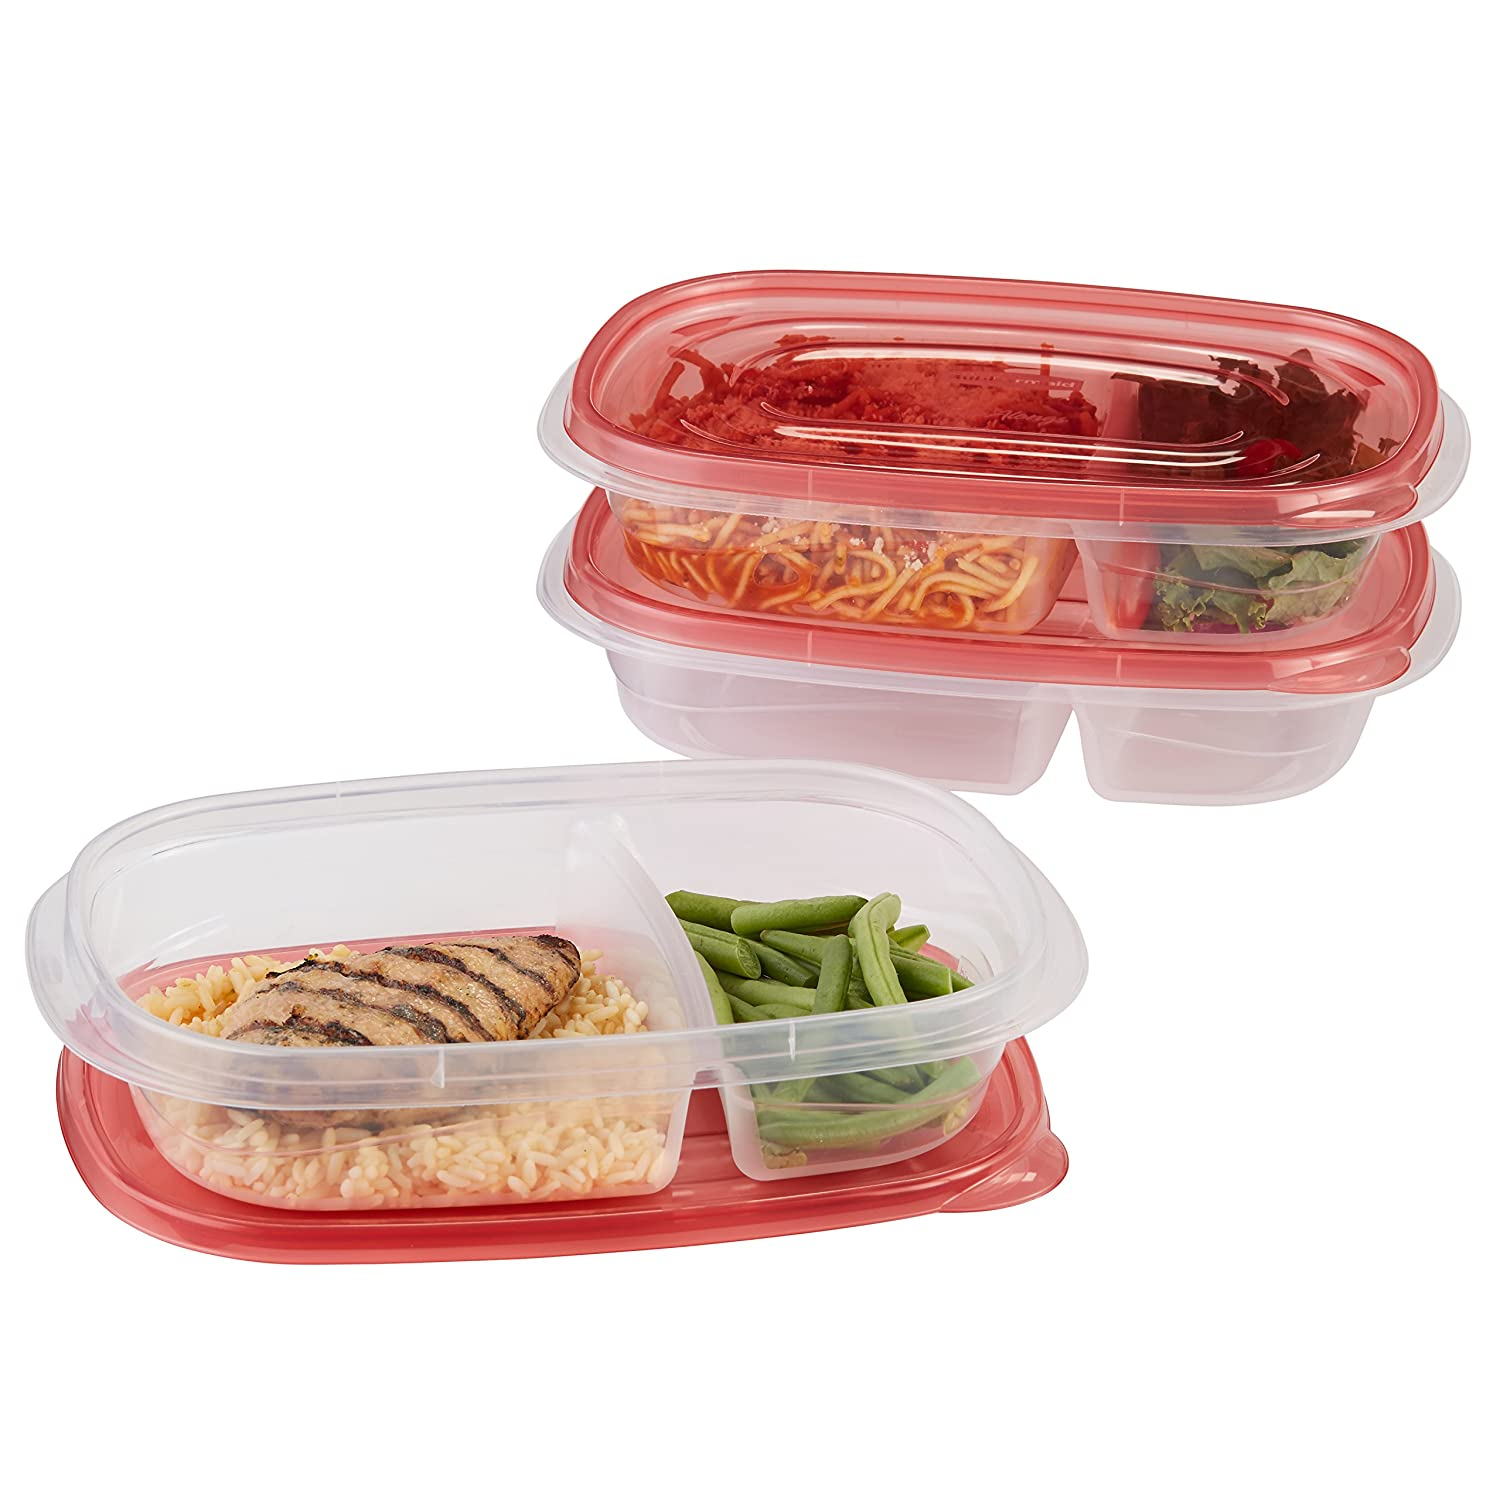 Rubbermaid TakeAlongs Food Storage Container Divided Dishes Set of